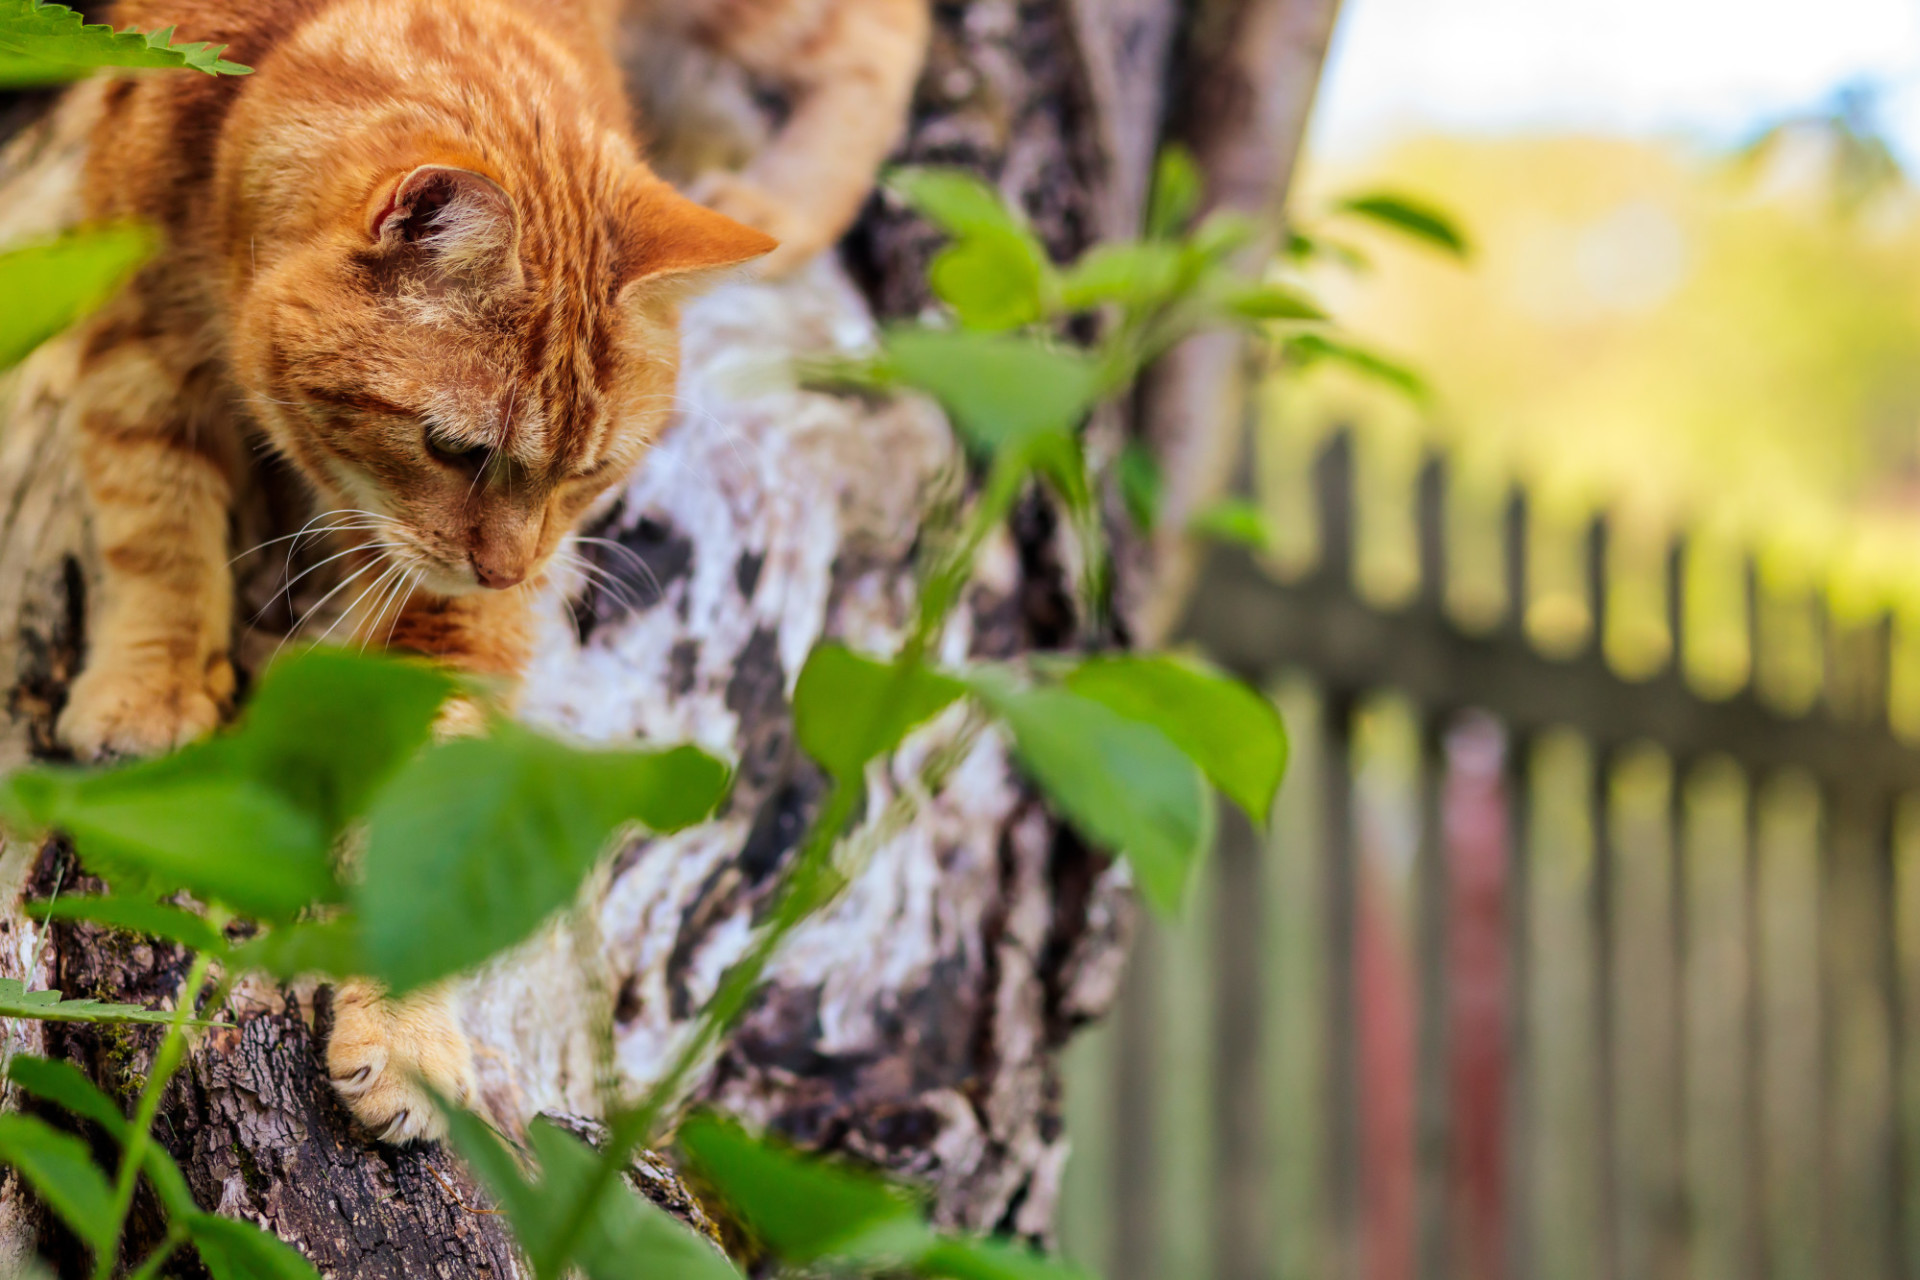 Red cat climbs down from tree